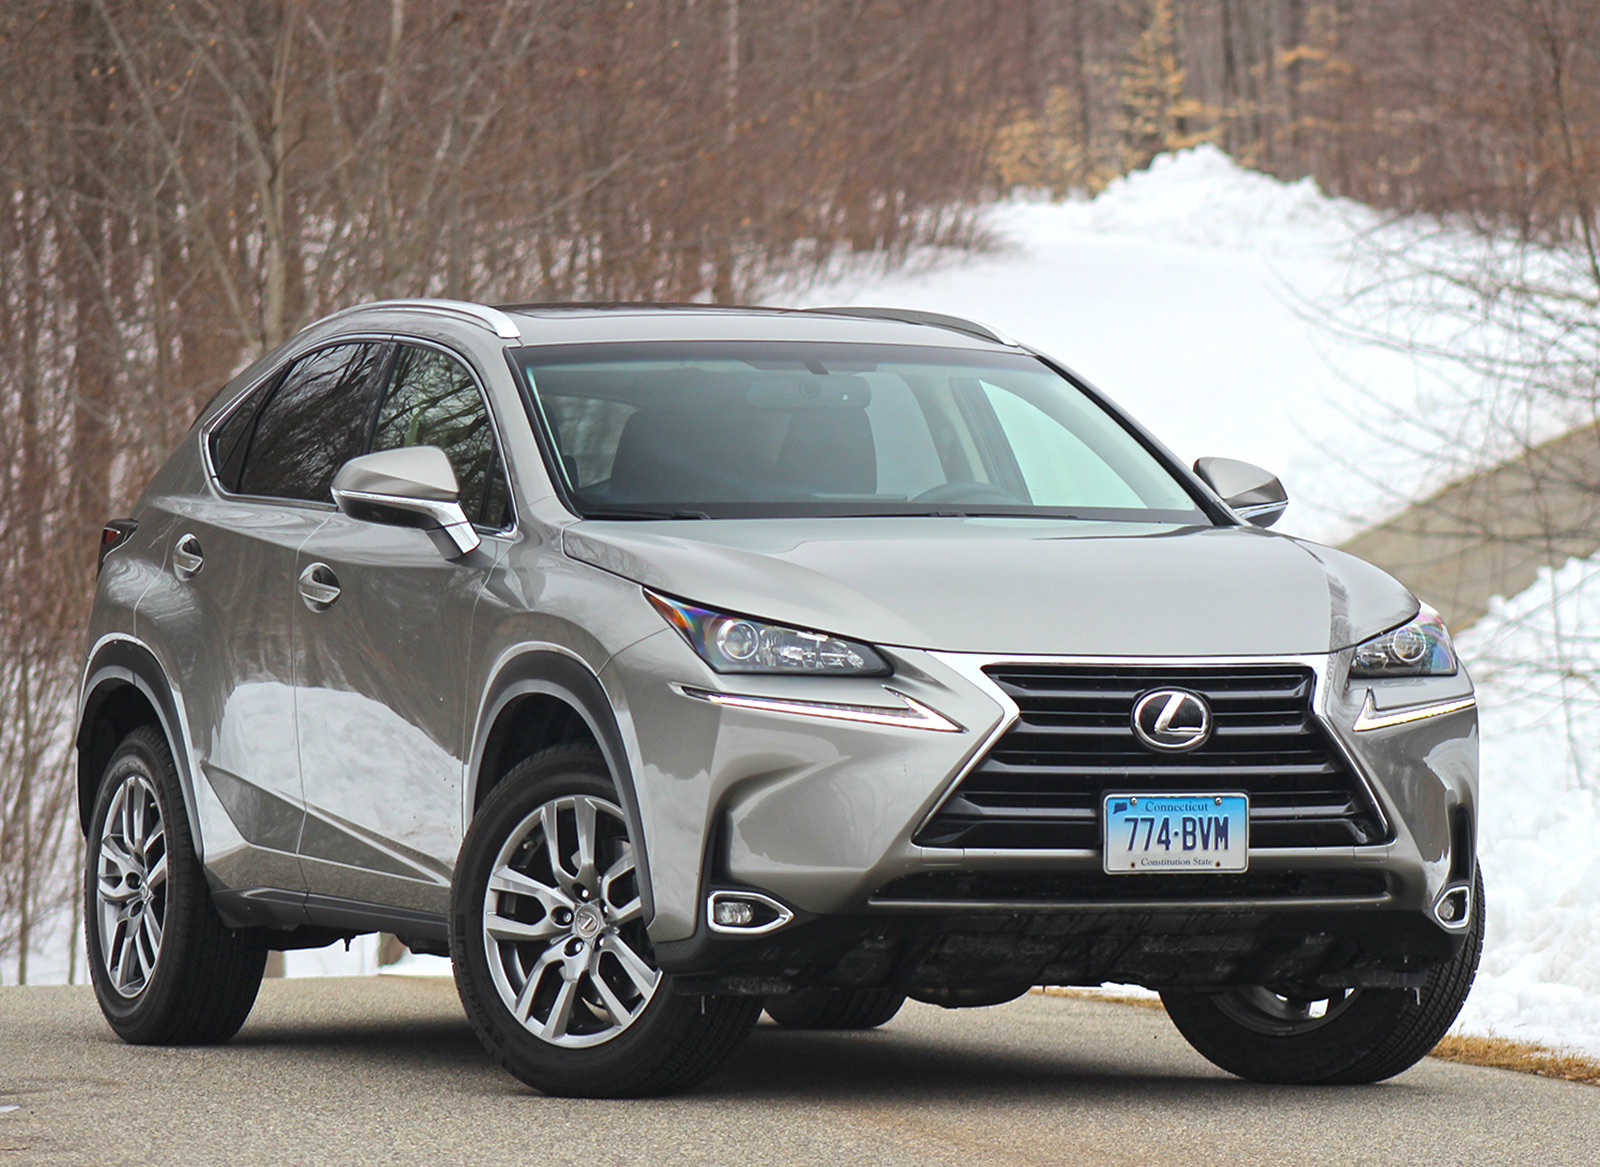 edgy 2015 lexus nx 200t proves agile and downright youthful consumer reports. Black Bedroom Furniture Sets. Home Design Ideas